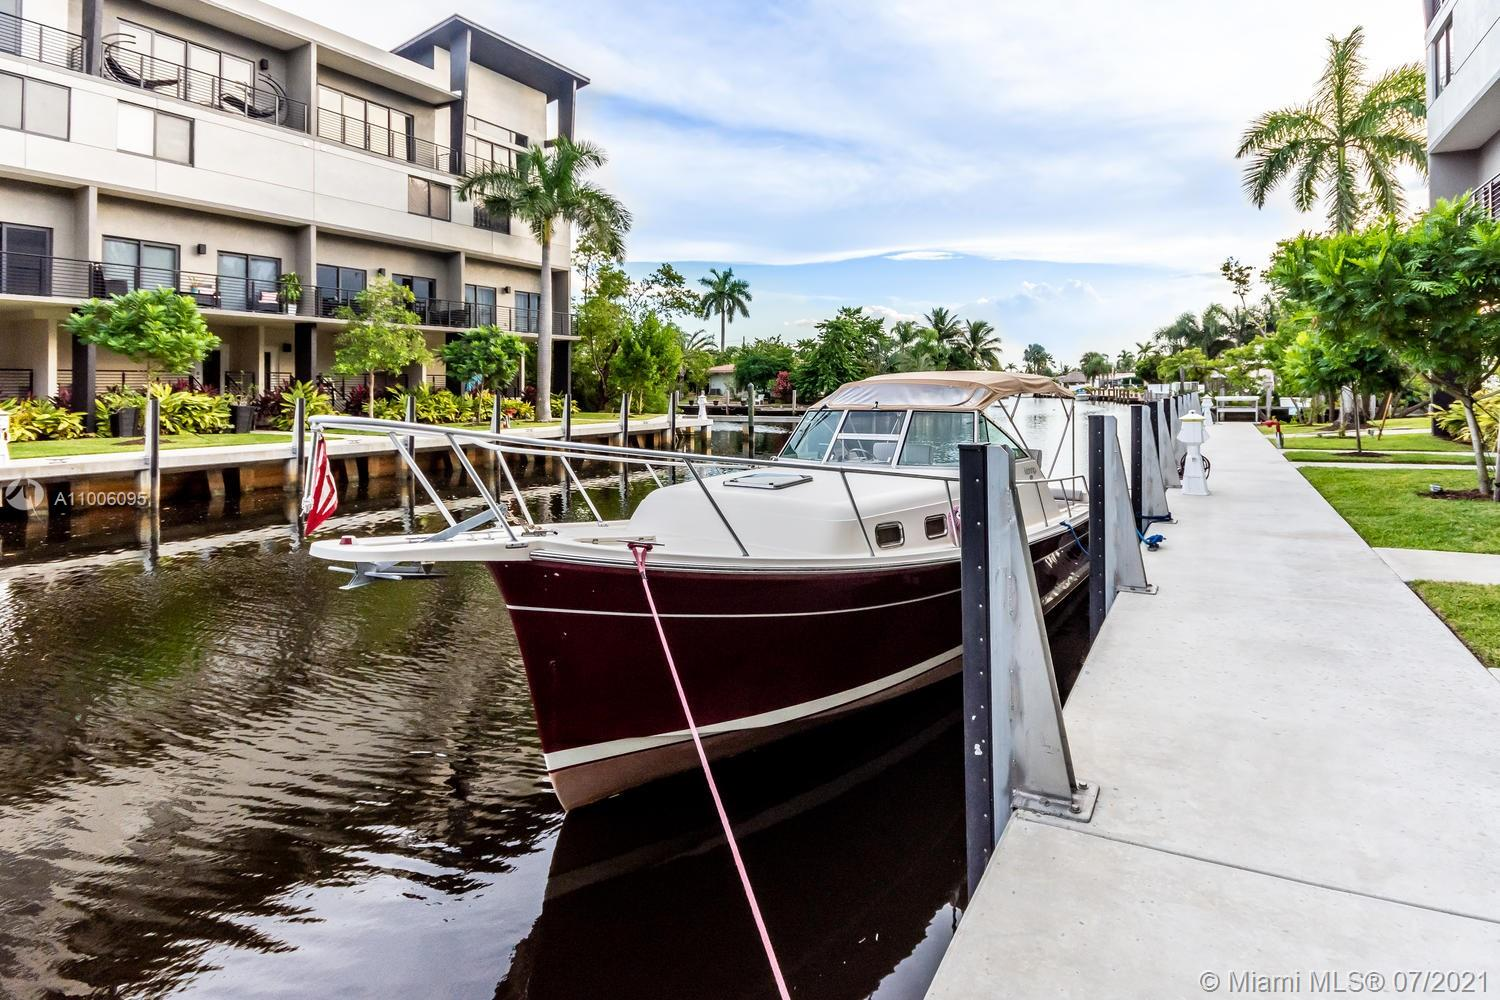 """Bring your boat! Modern Luxurious Upgraded. Waterfront beauty with ocean access is like """"new""""! 3 Bed 3 Baths townhouse with attached garage, on the water, with marina. Open floor plan with high celling's. Ideal full bath and bedroom in first floor! South balconies overlooking the canal. Amenities of a 5-star hotel, with a pool overlooking the marina.  Impressive fixtures, top of the line stainless steel appliances, modern kitchen, and bath cabinetry with Krion countertops, Stylish ceramic throughout the property. Impact windows. Gated security. Children's play area and dog park. Pet friendly with no weight restrictions. 2 more parking spaces in the property plus guest parking always available. Fully equipped gym and clubhouse. Close to US1 and I-95 in Pompano's new development district."""